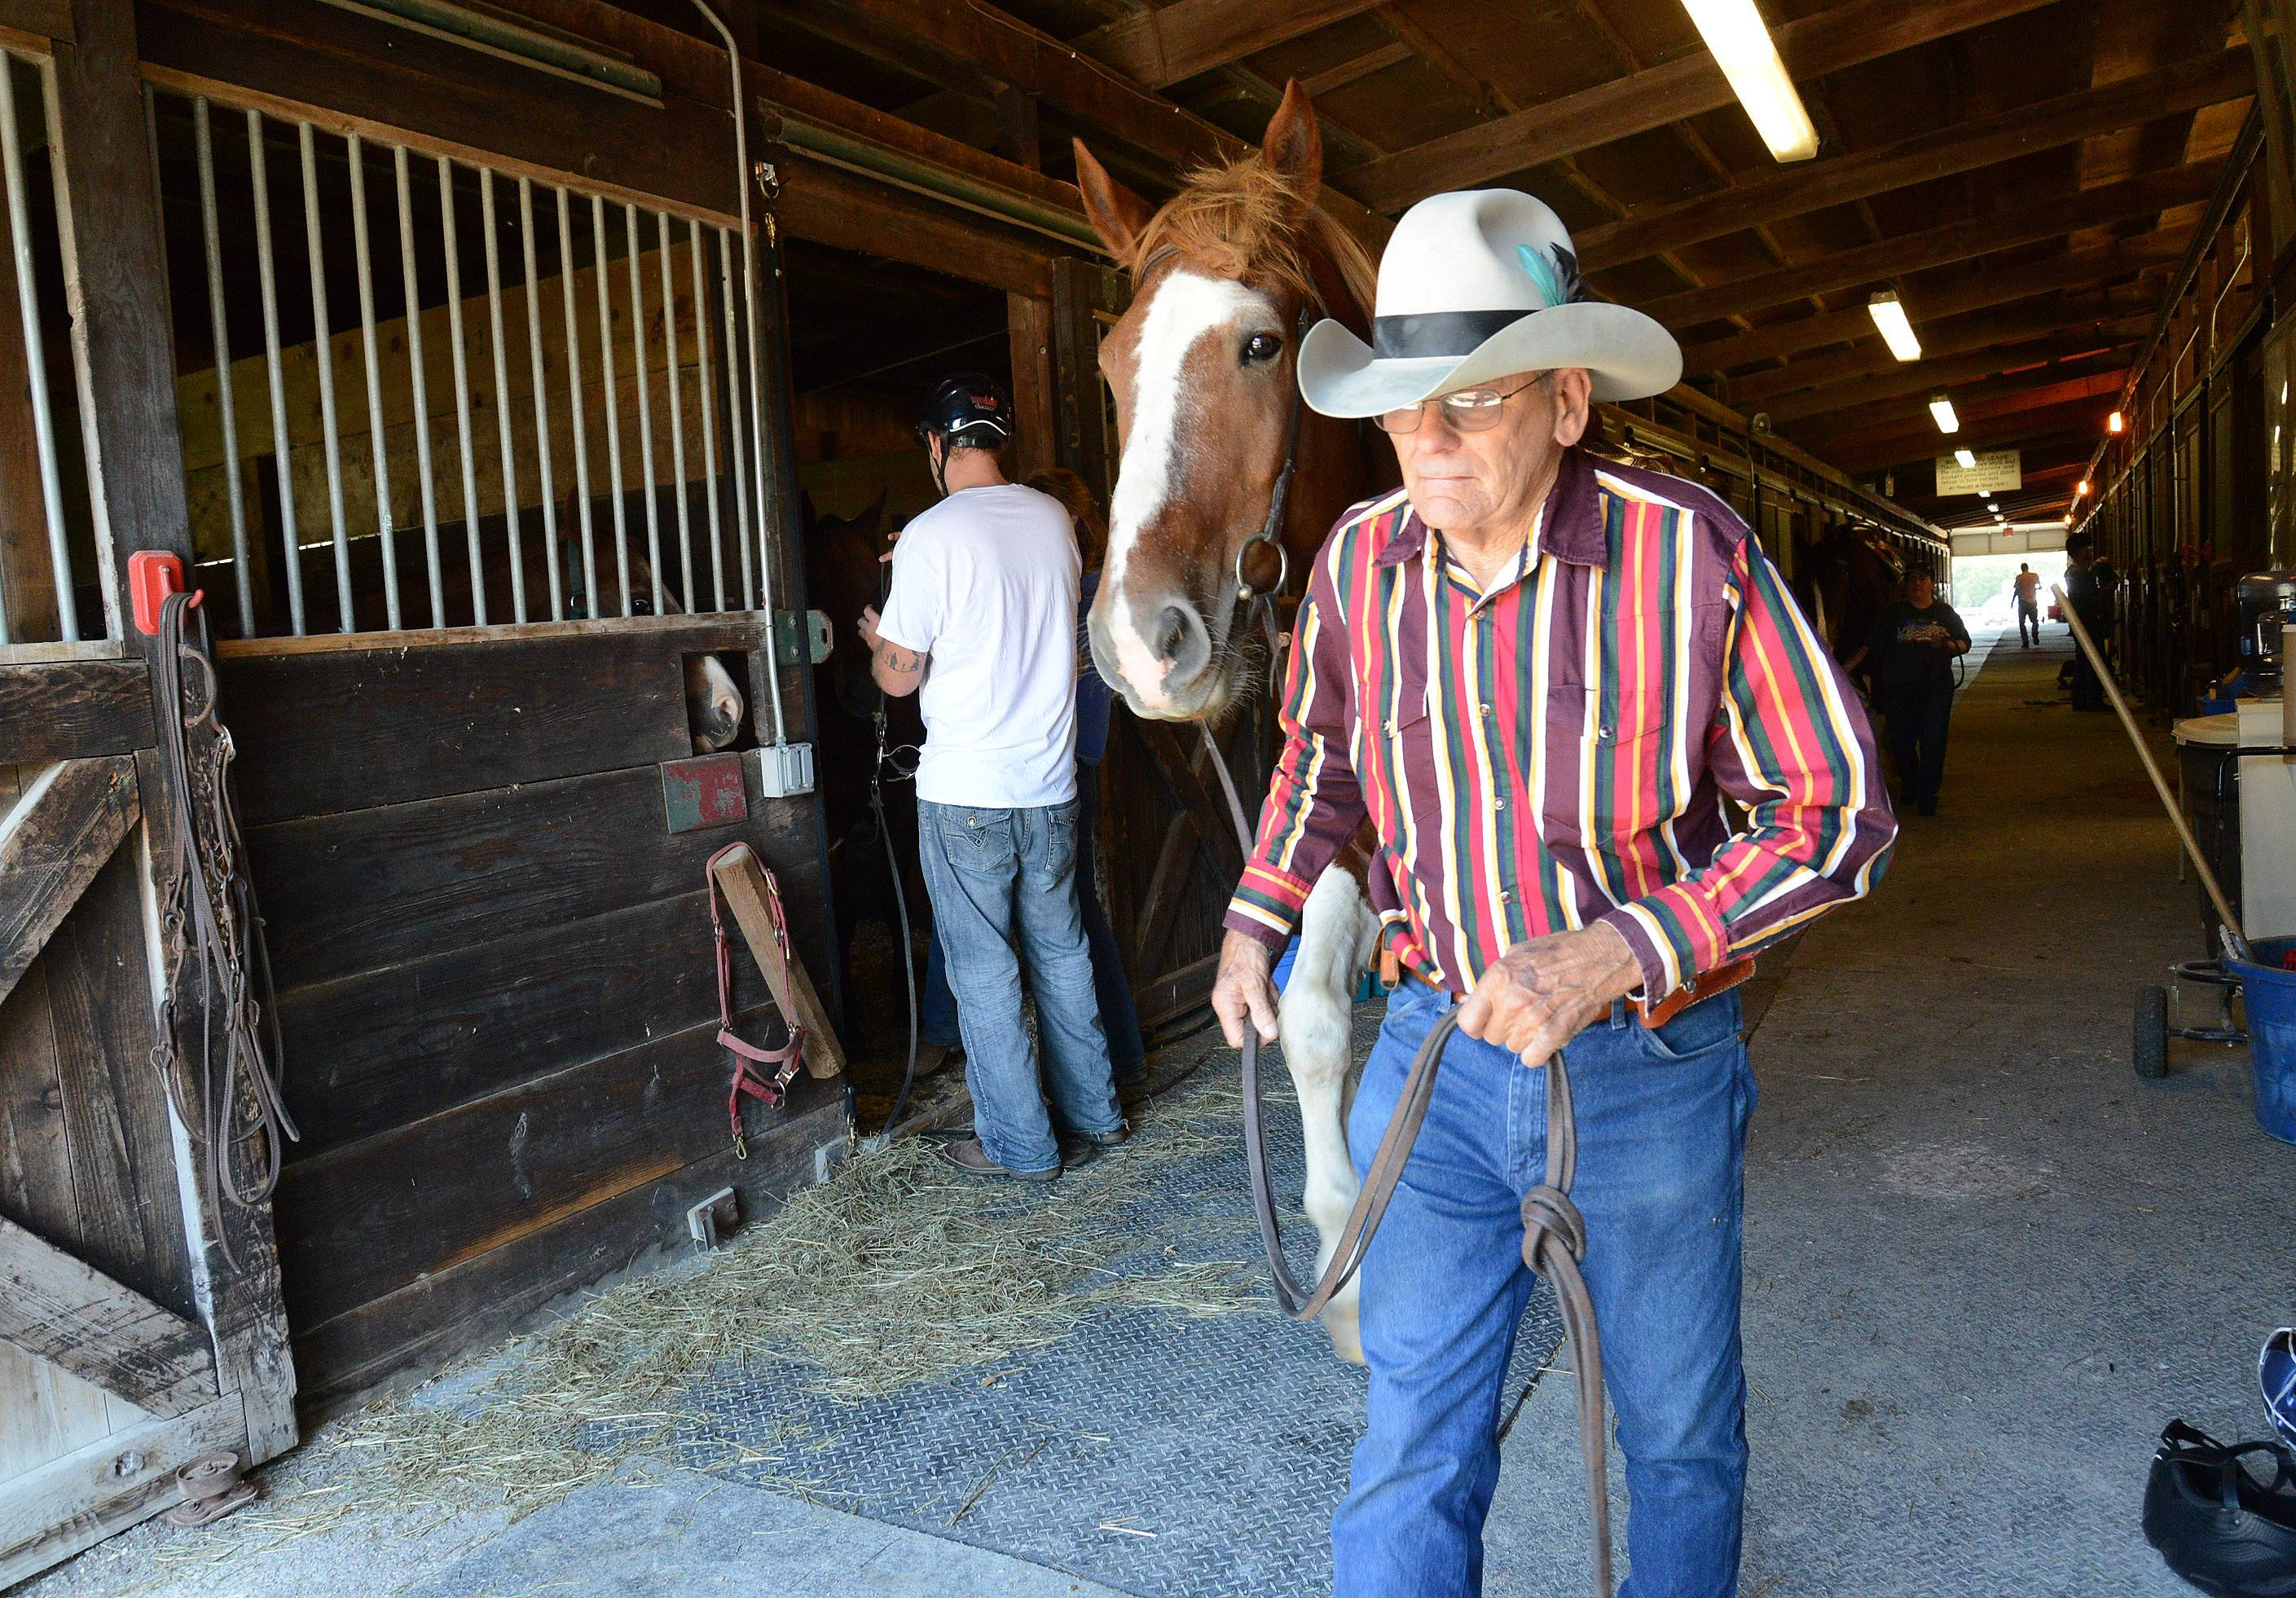 Riders prepare to ride out on the trail Monday, as about 45 military vets take part in an equine therapy event at the Barrington Hills Riding Center in Barrington Hills.